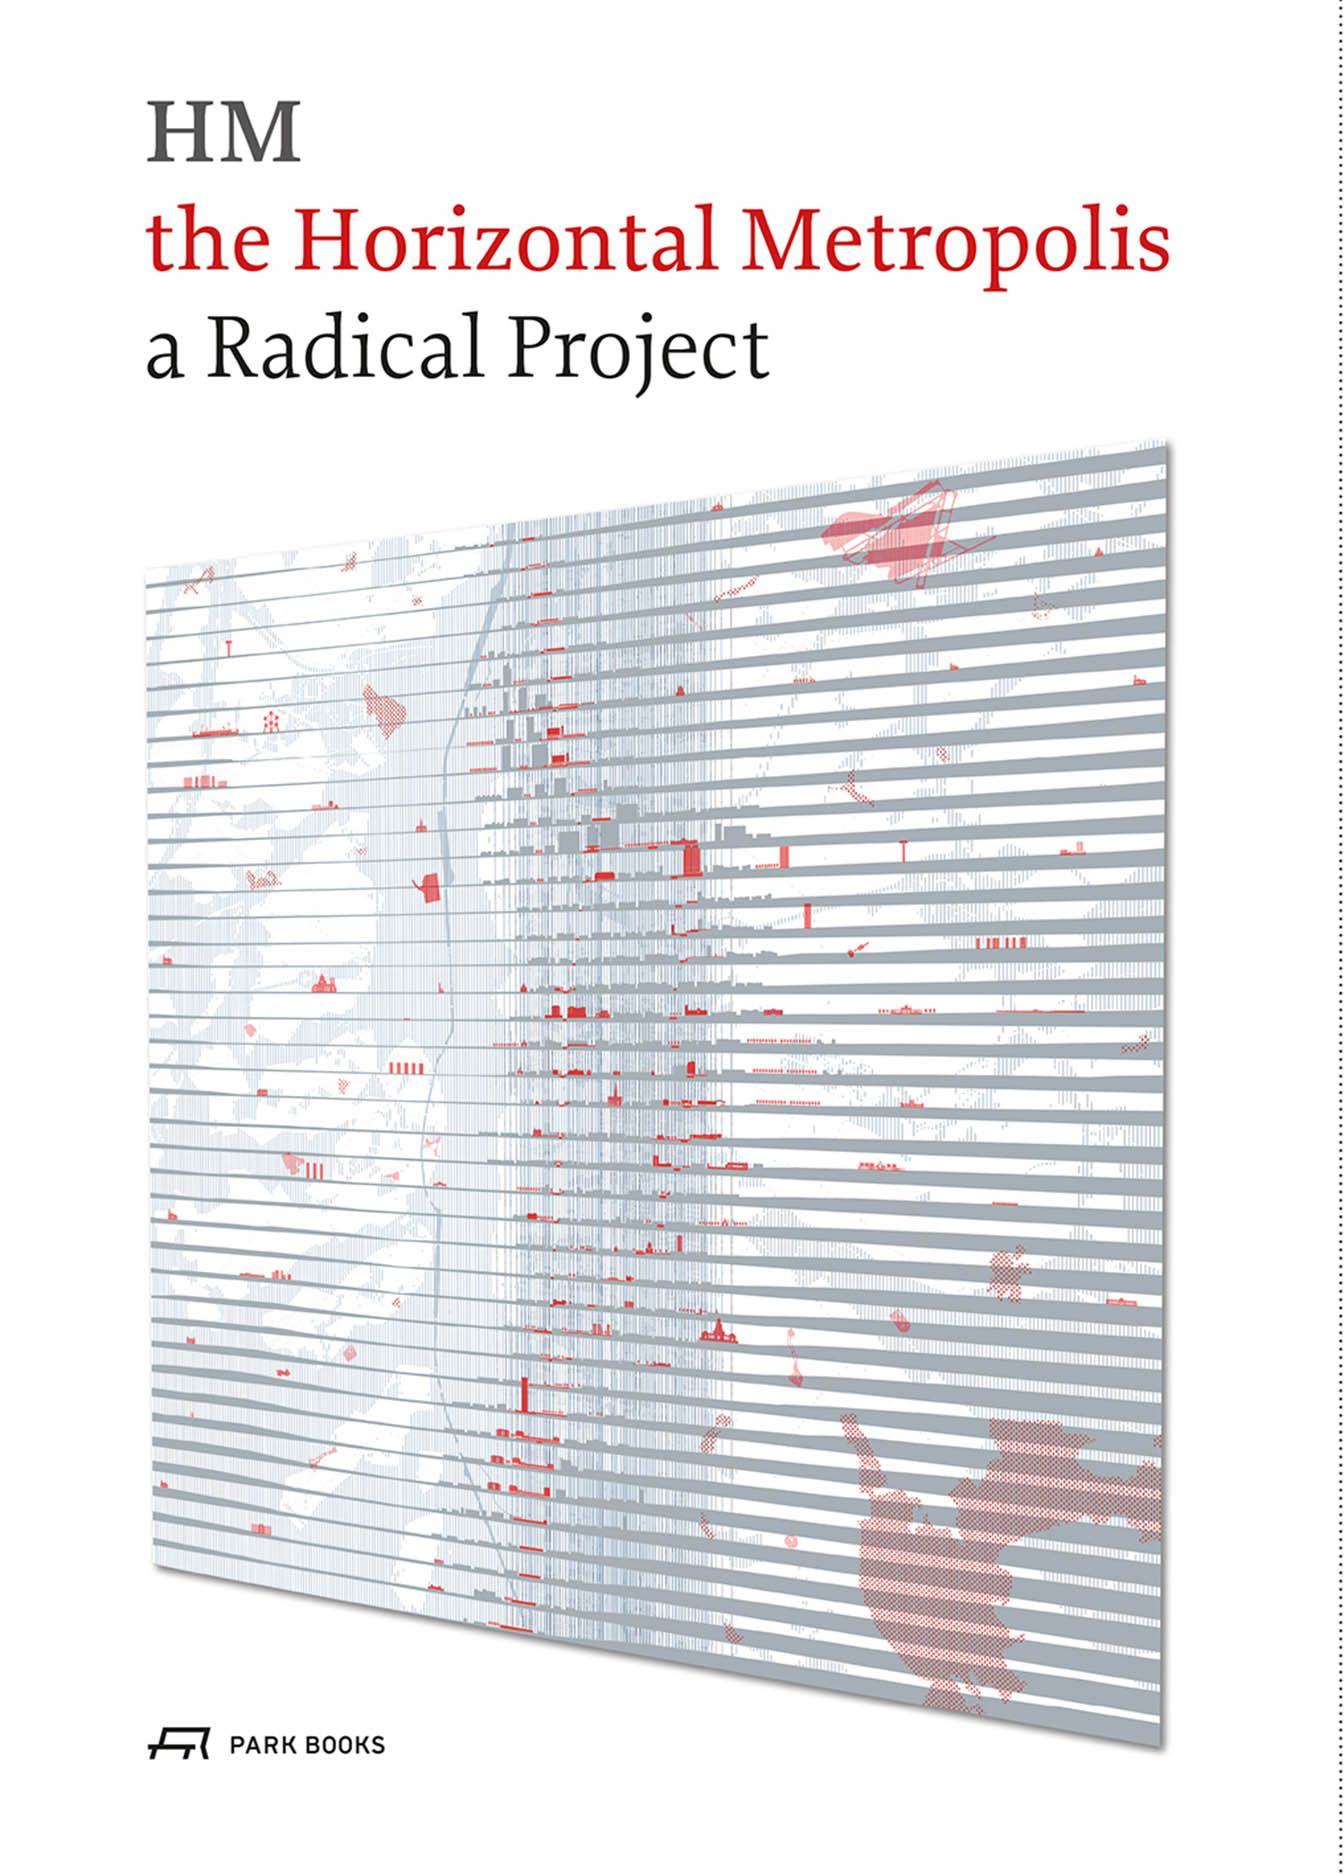 The Horizontal Metropolis: A Radical Project